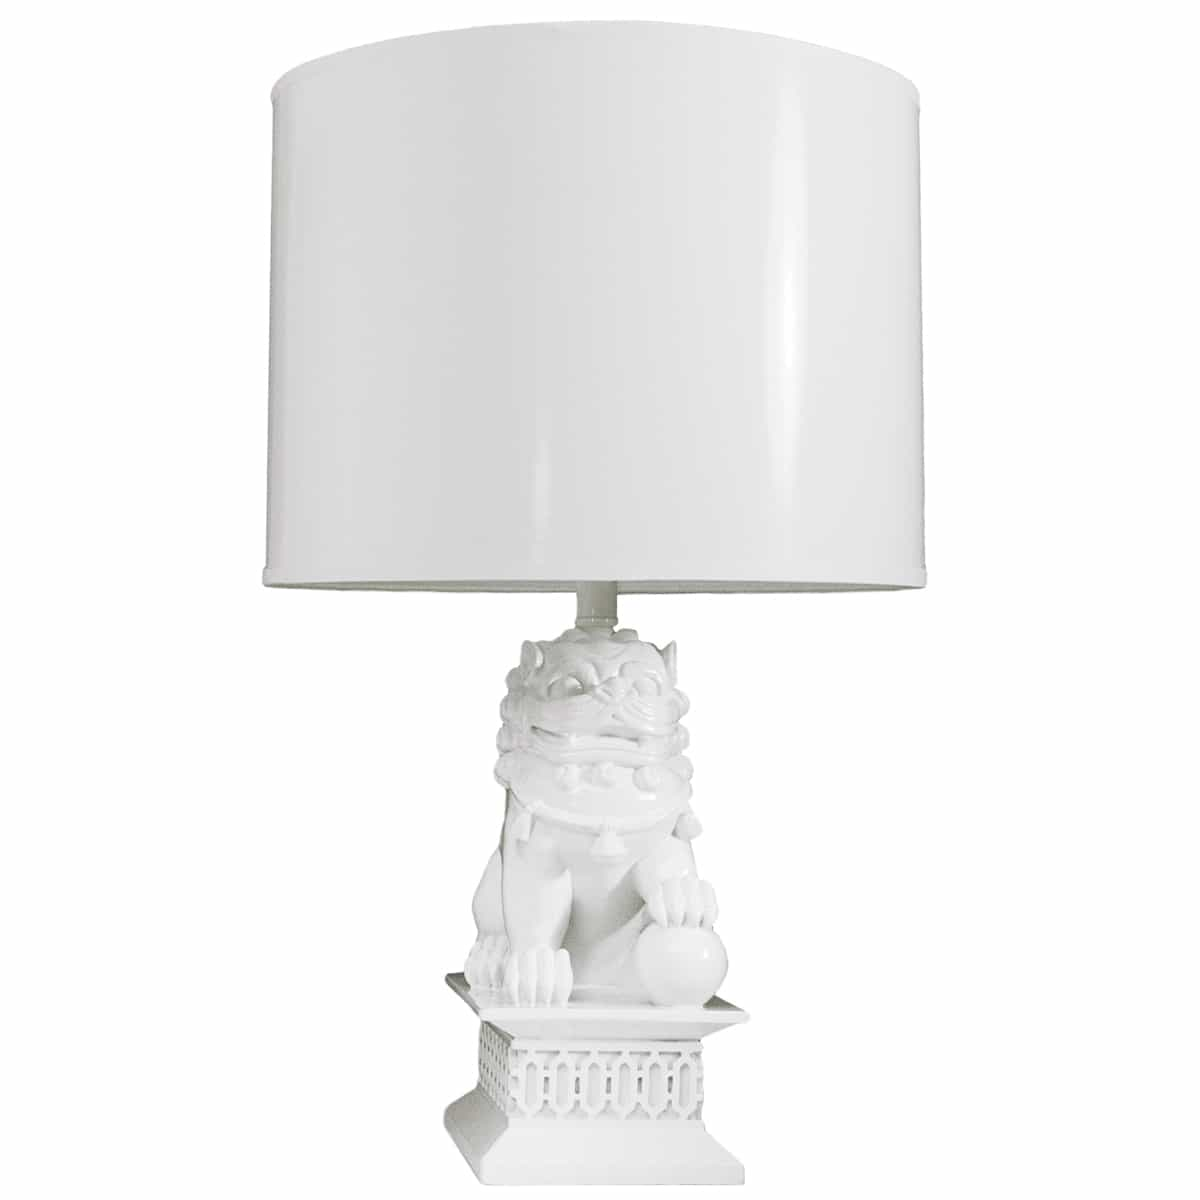 the look for less diy jonathan adler lamp  bugaboocity - foo dogs white table lamp designed by barbara cosgrove